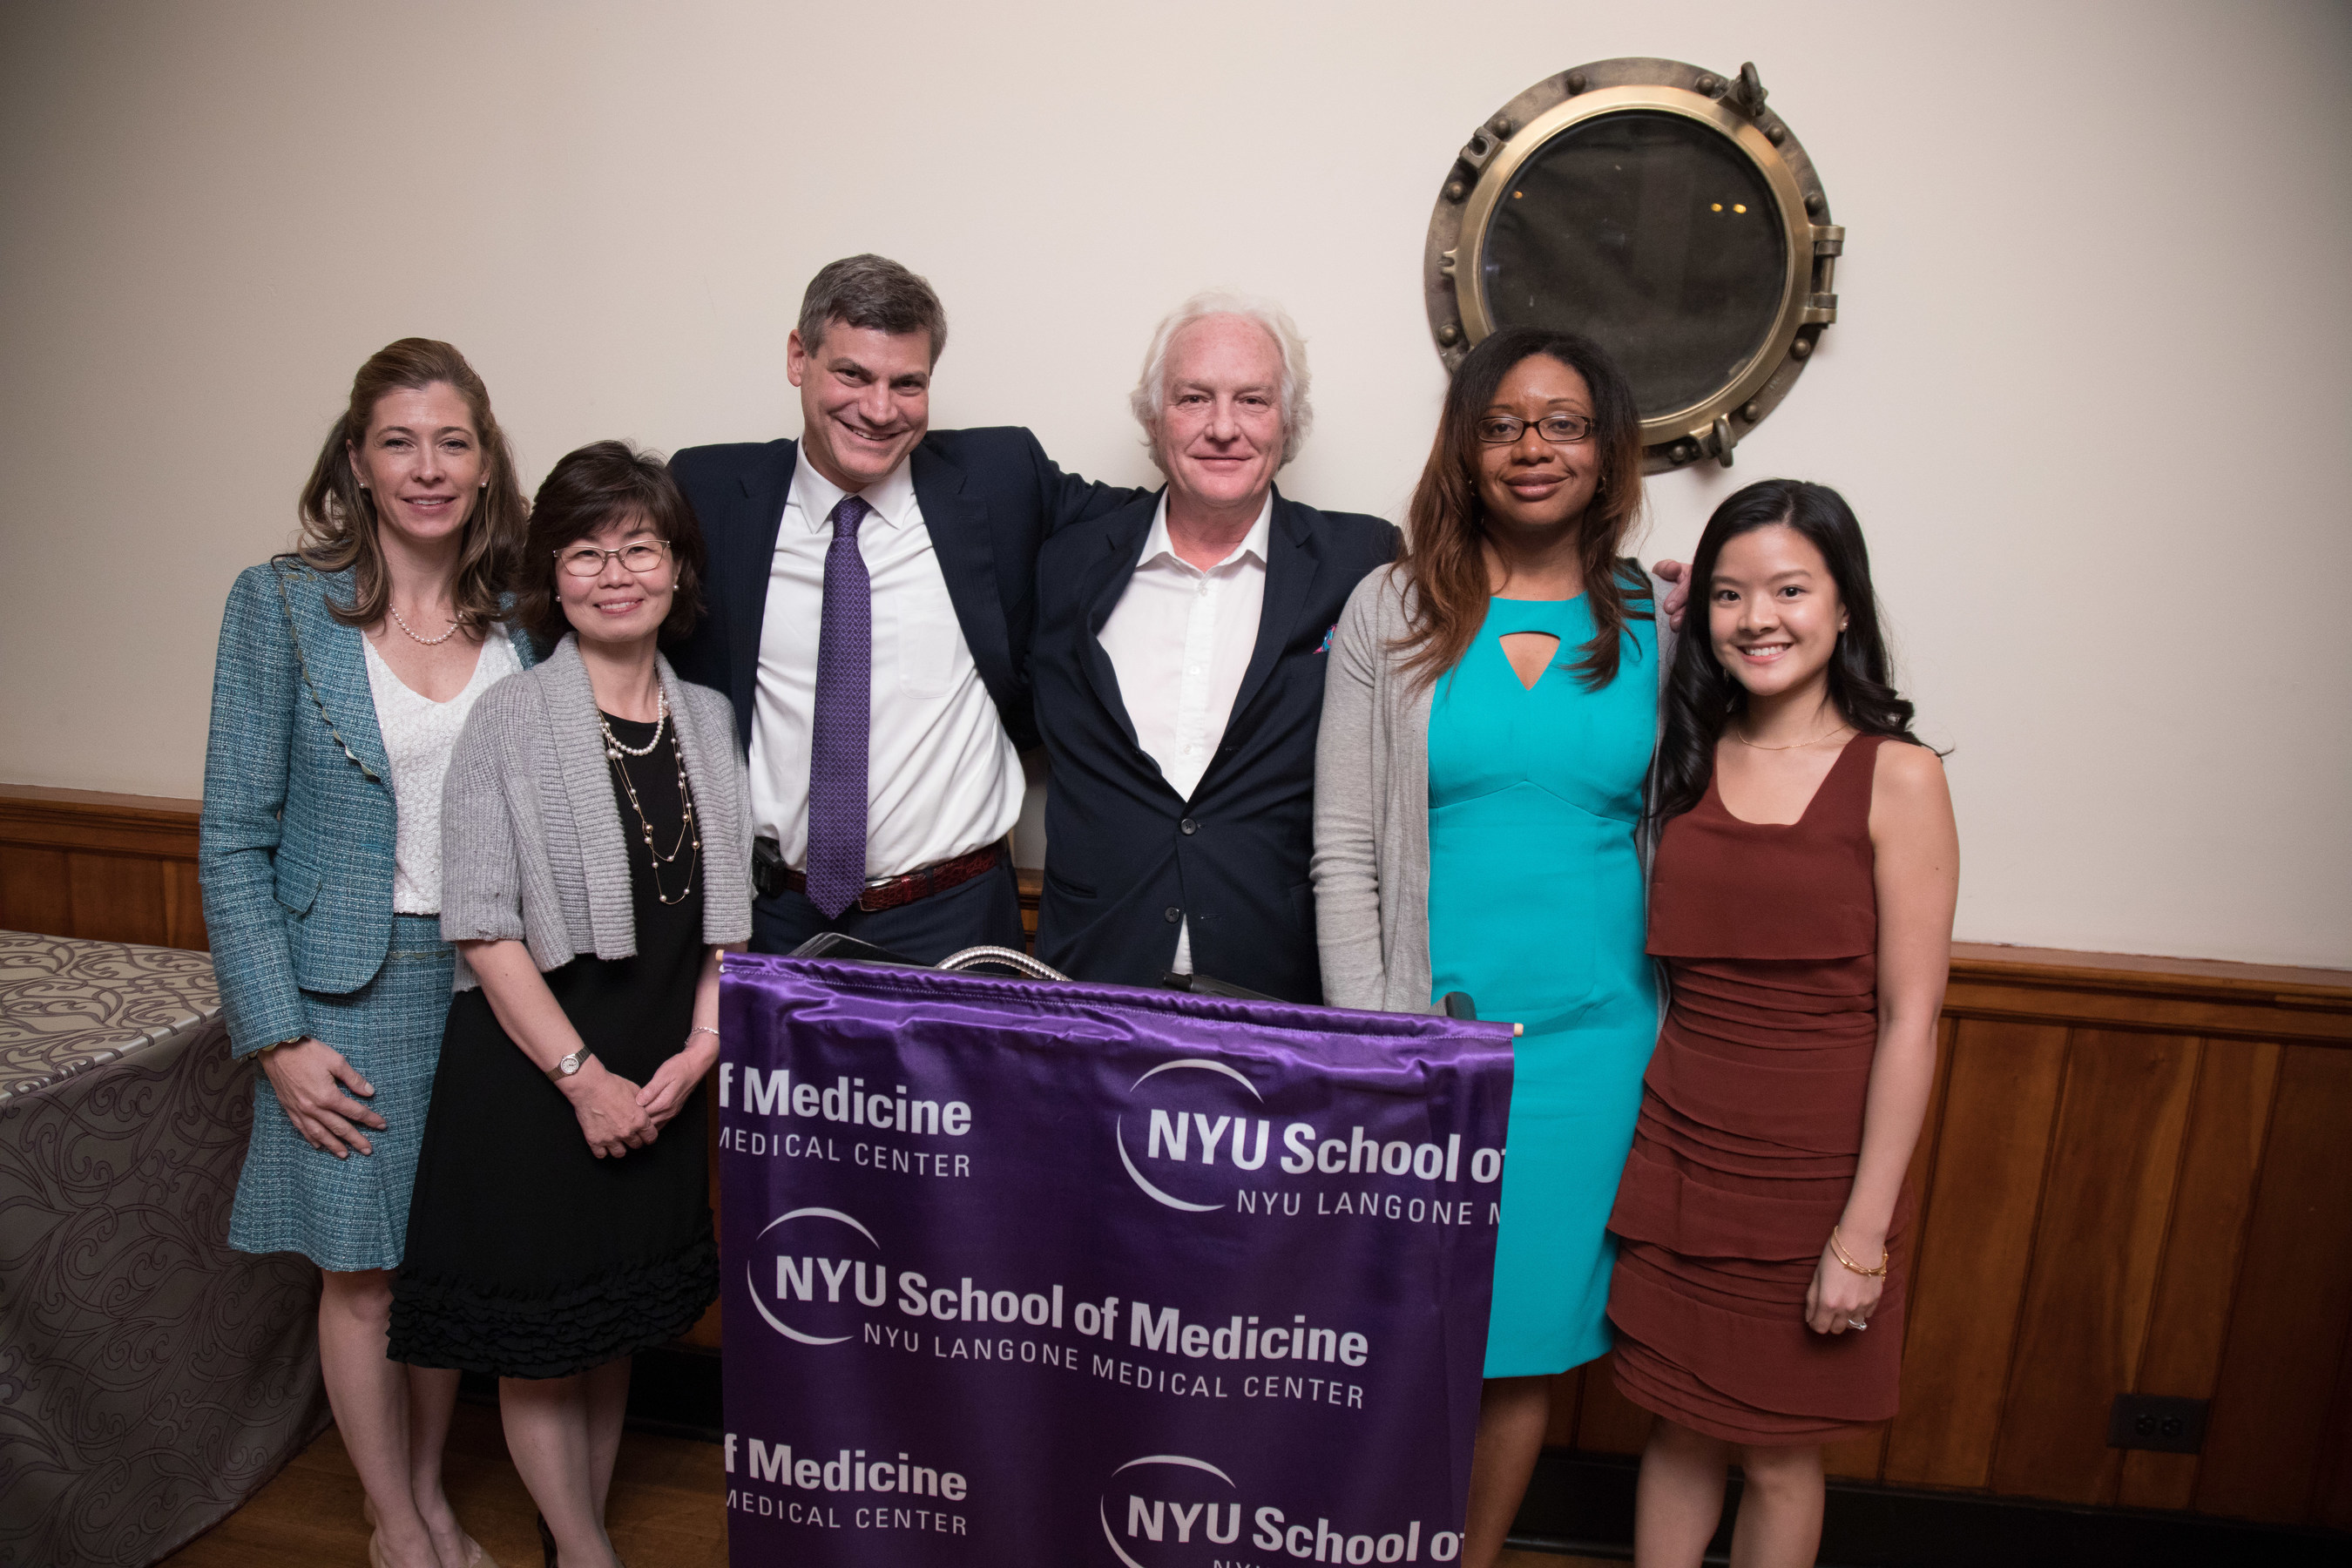 Honorees of the second annual J. Christopher Burch Award for Humanism in Medicine at NYU Langone's Division of Gastroenterology stand with division director Dr. Mark Pochapin and Christopher Burch: [left to right] Carlie Patterson, Jungwon Jun, Renee Williams, and Mabel Liu.